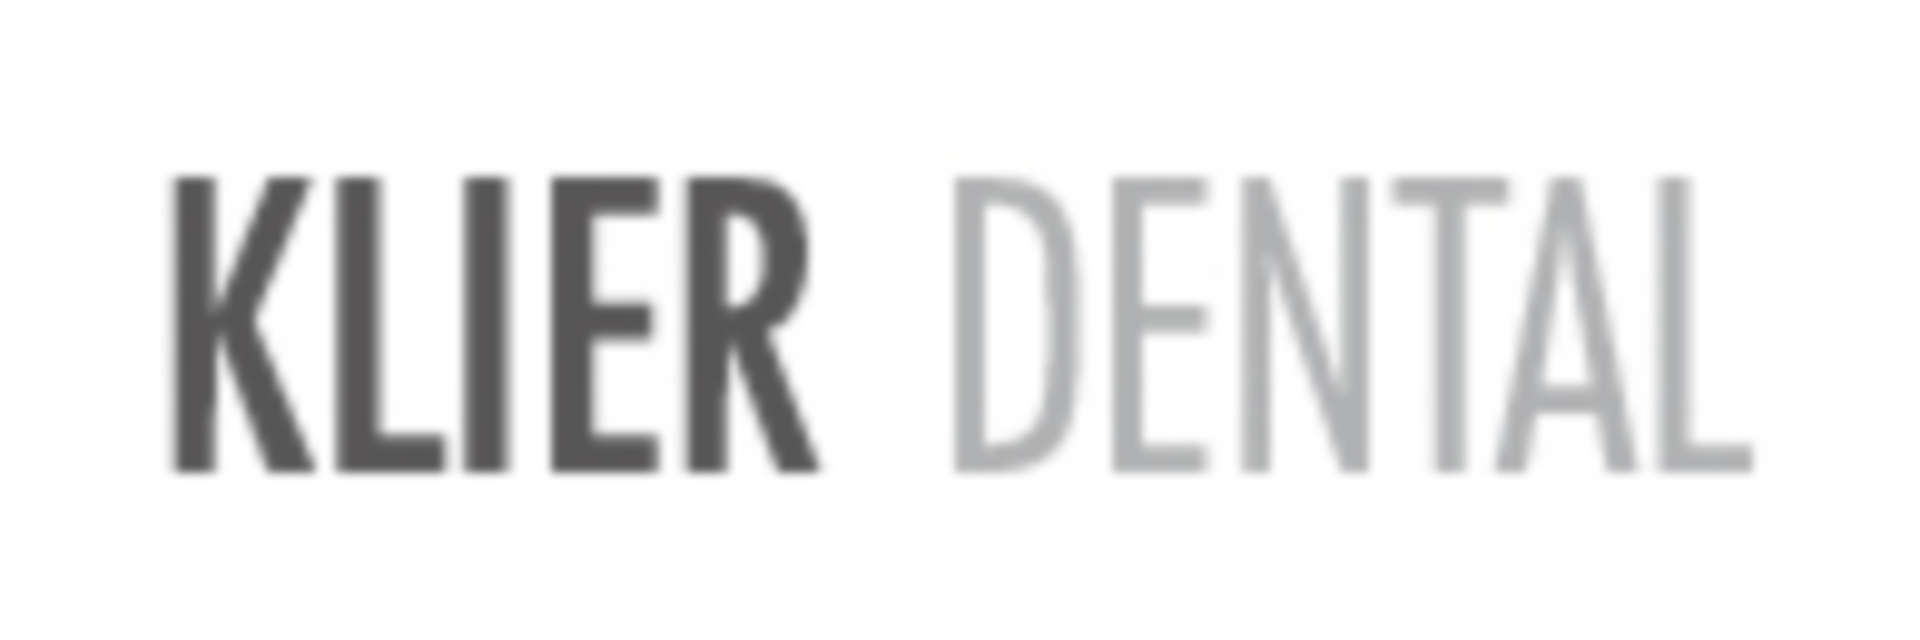 logo-partner-klier-dental.jpg